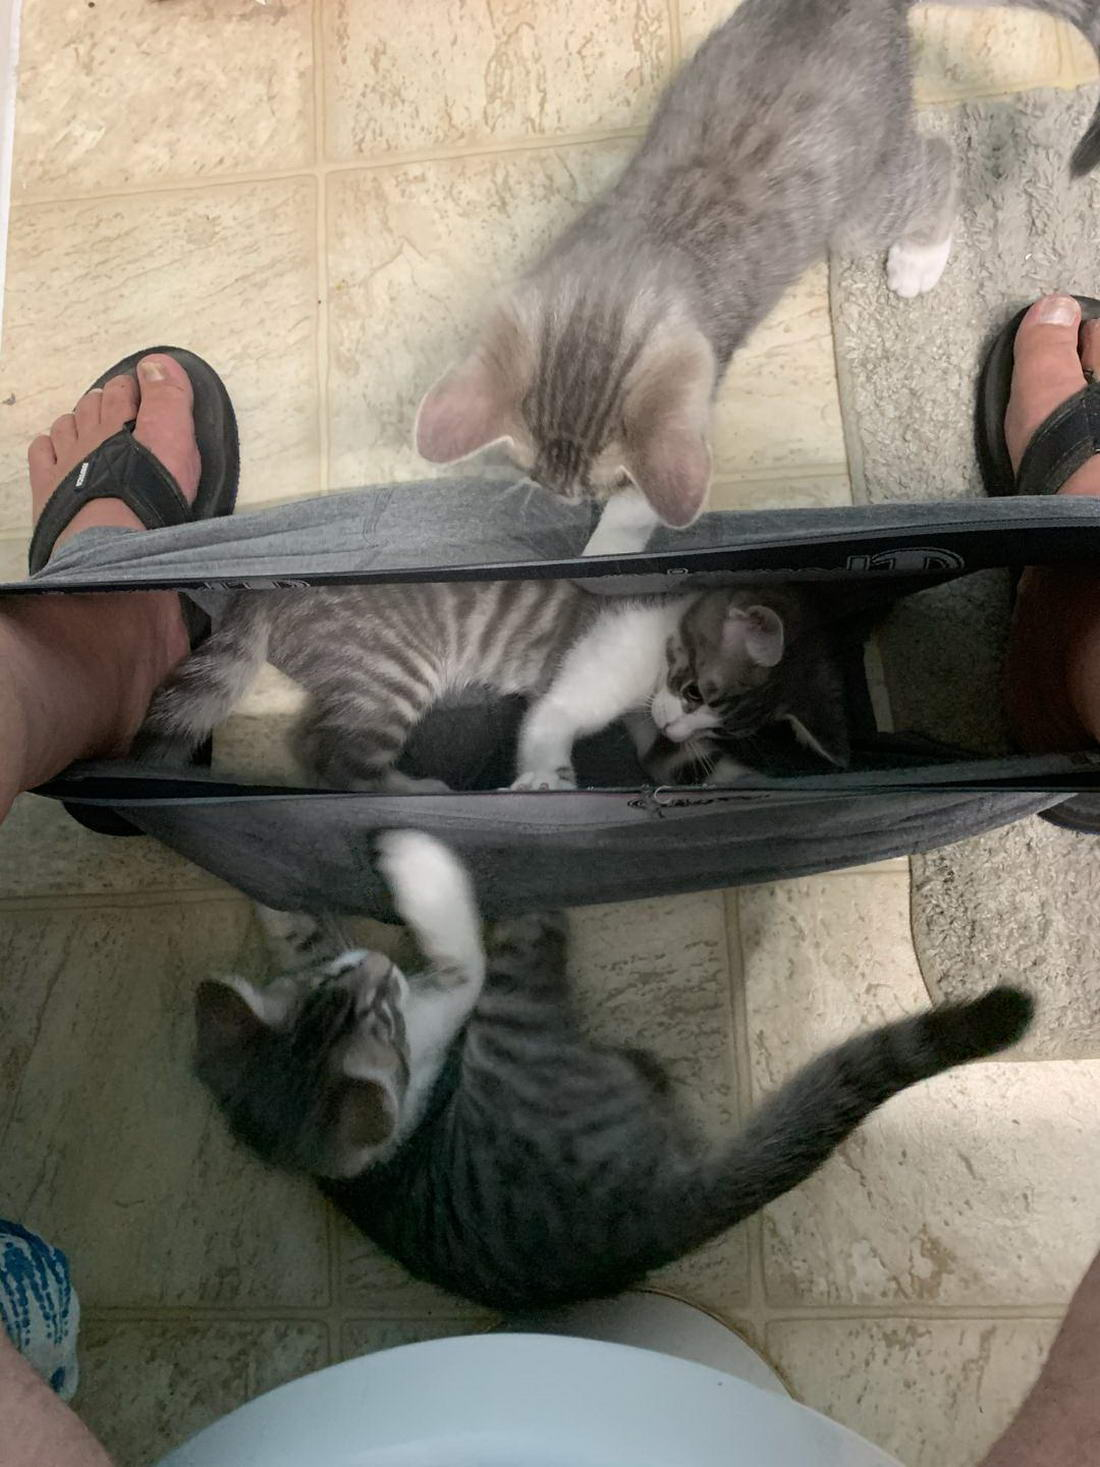 Funny Animals Pictures To Make Your Day (40 Photos)